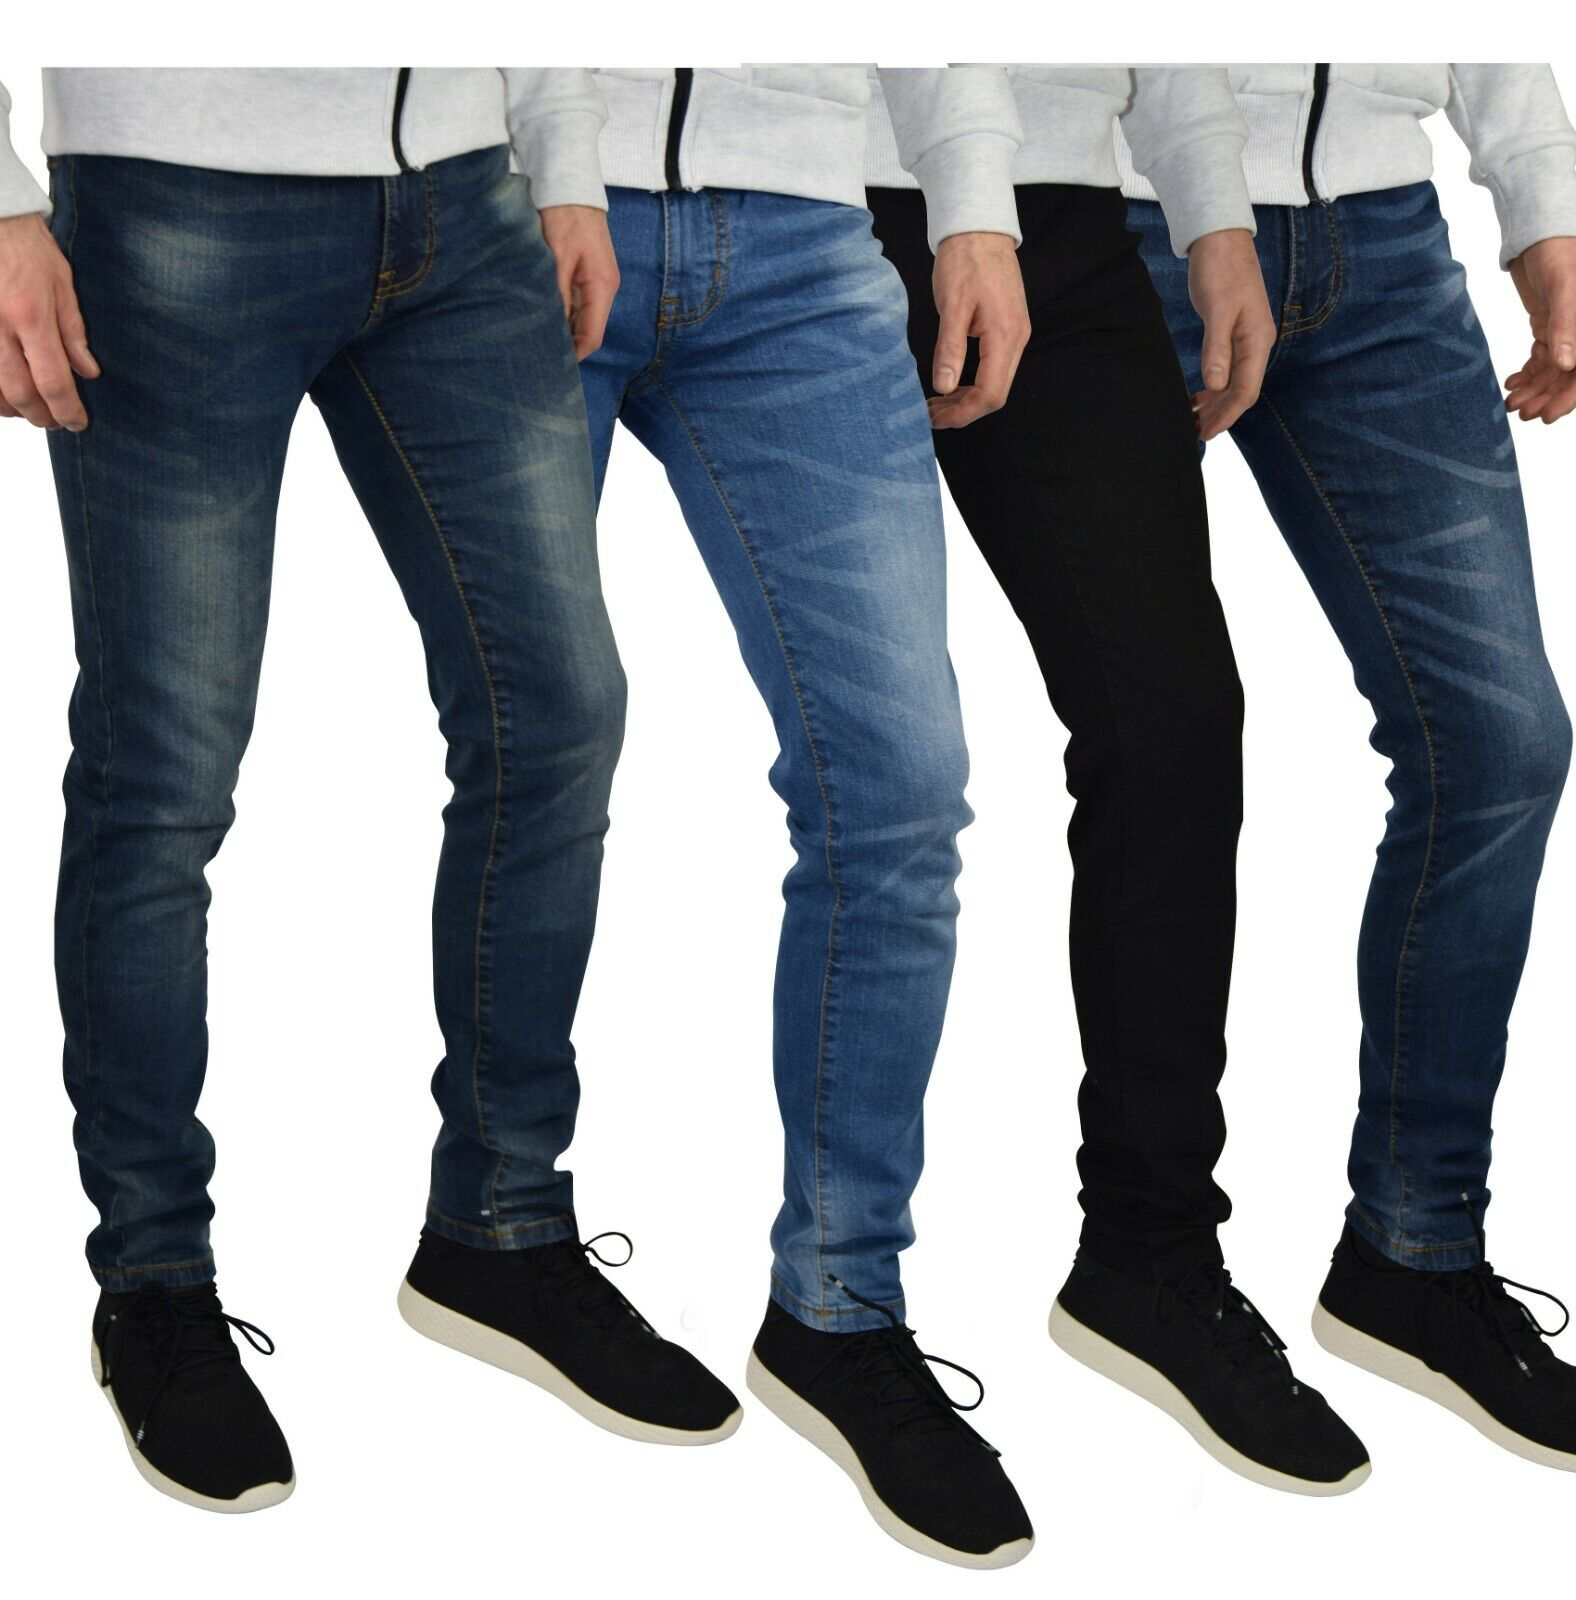 Mens Slim Fit Stretch Jeans Comfy Fashionable Super Flex Denim Pants Clothing, Shoes & Accessories